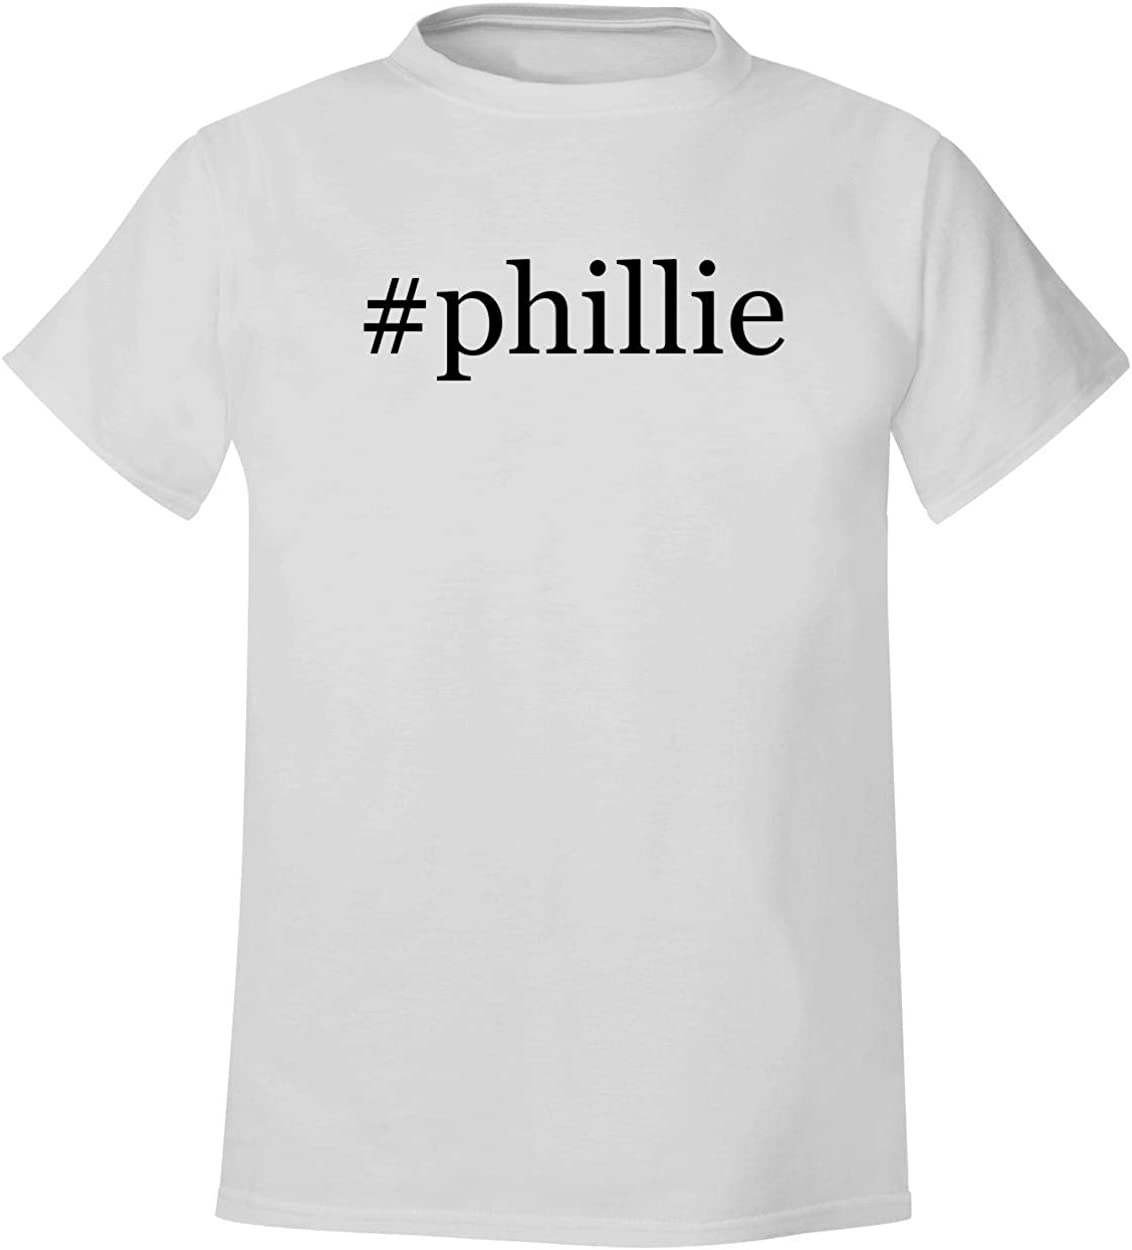 #Phillie - Men'S Hashtag Soft & Comfortable T-Shirt